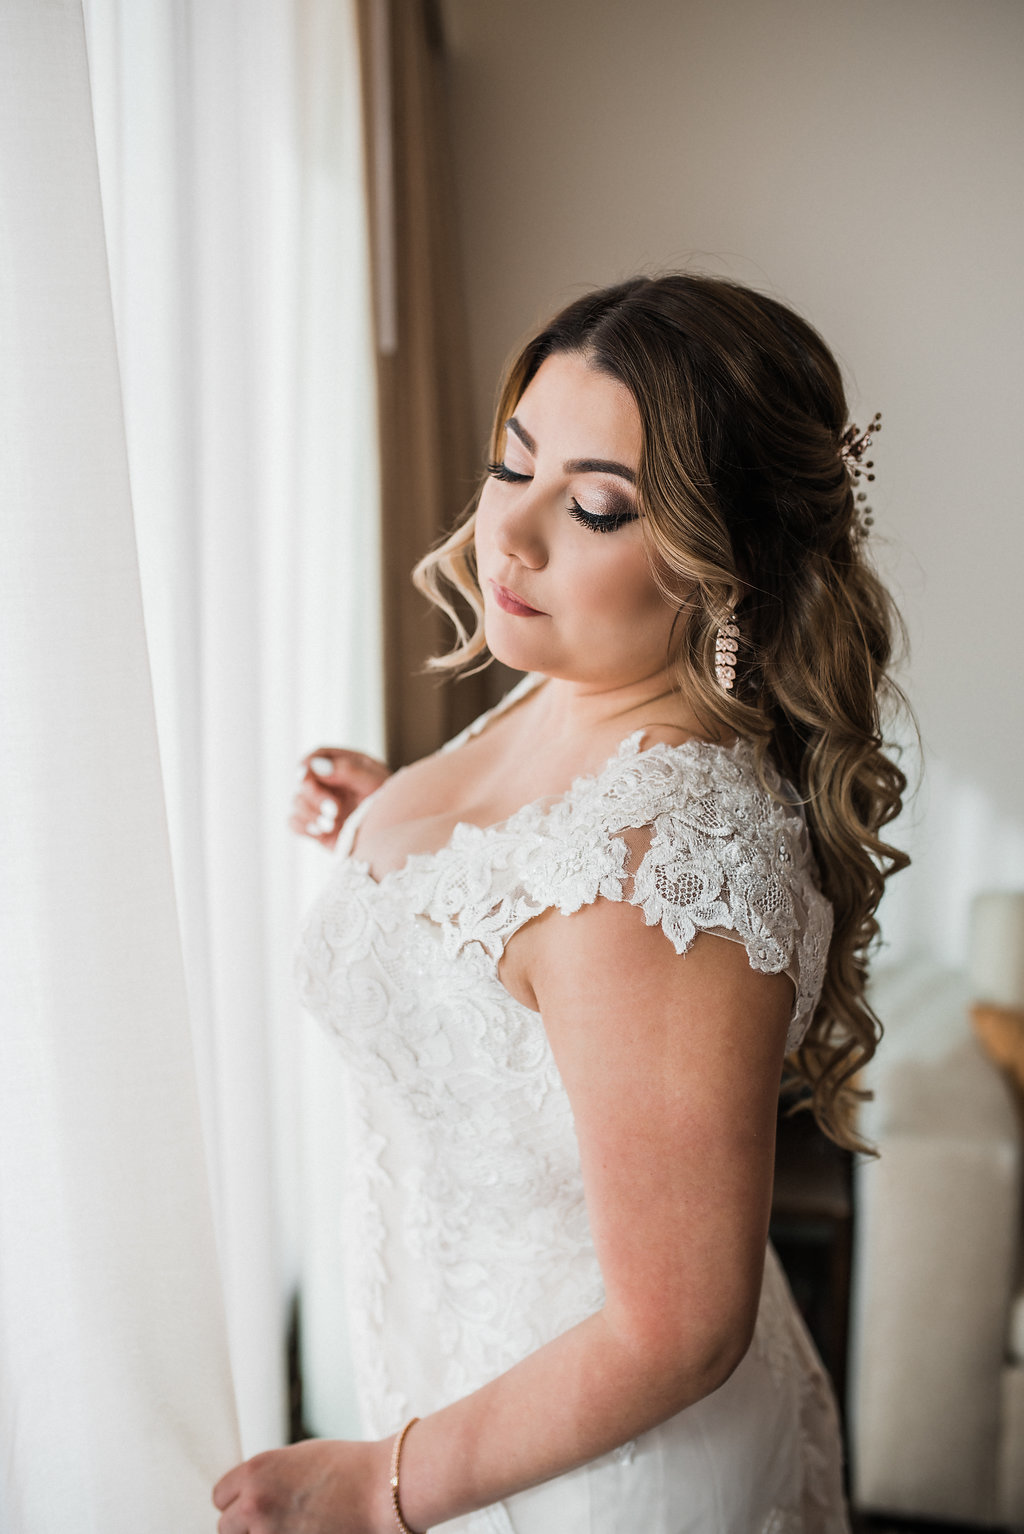 Miller Estate Vintage Wedding - The Overwhelmed Bride Wedding Blog